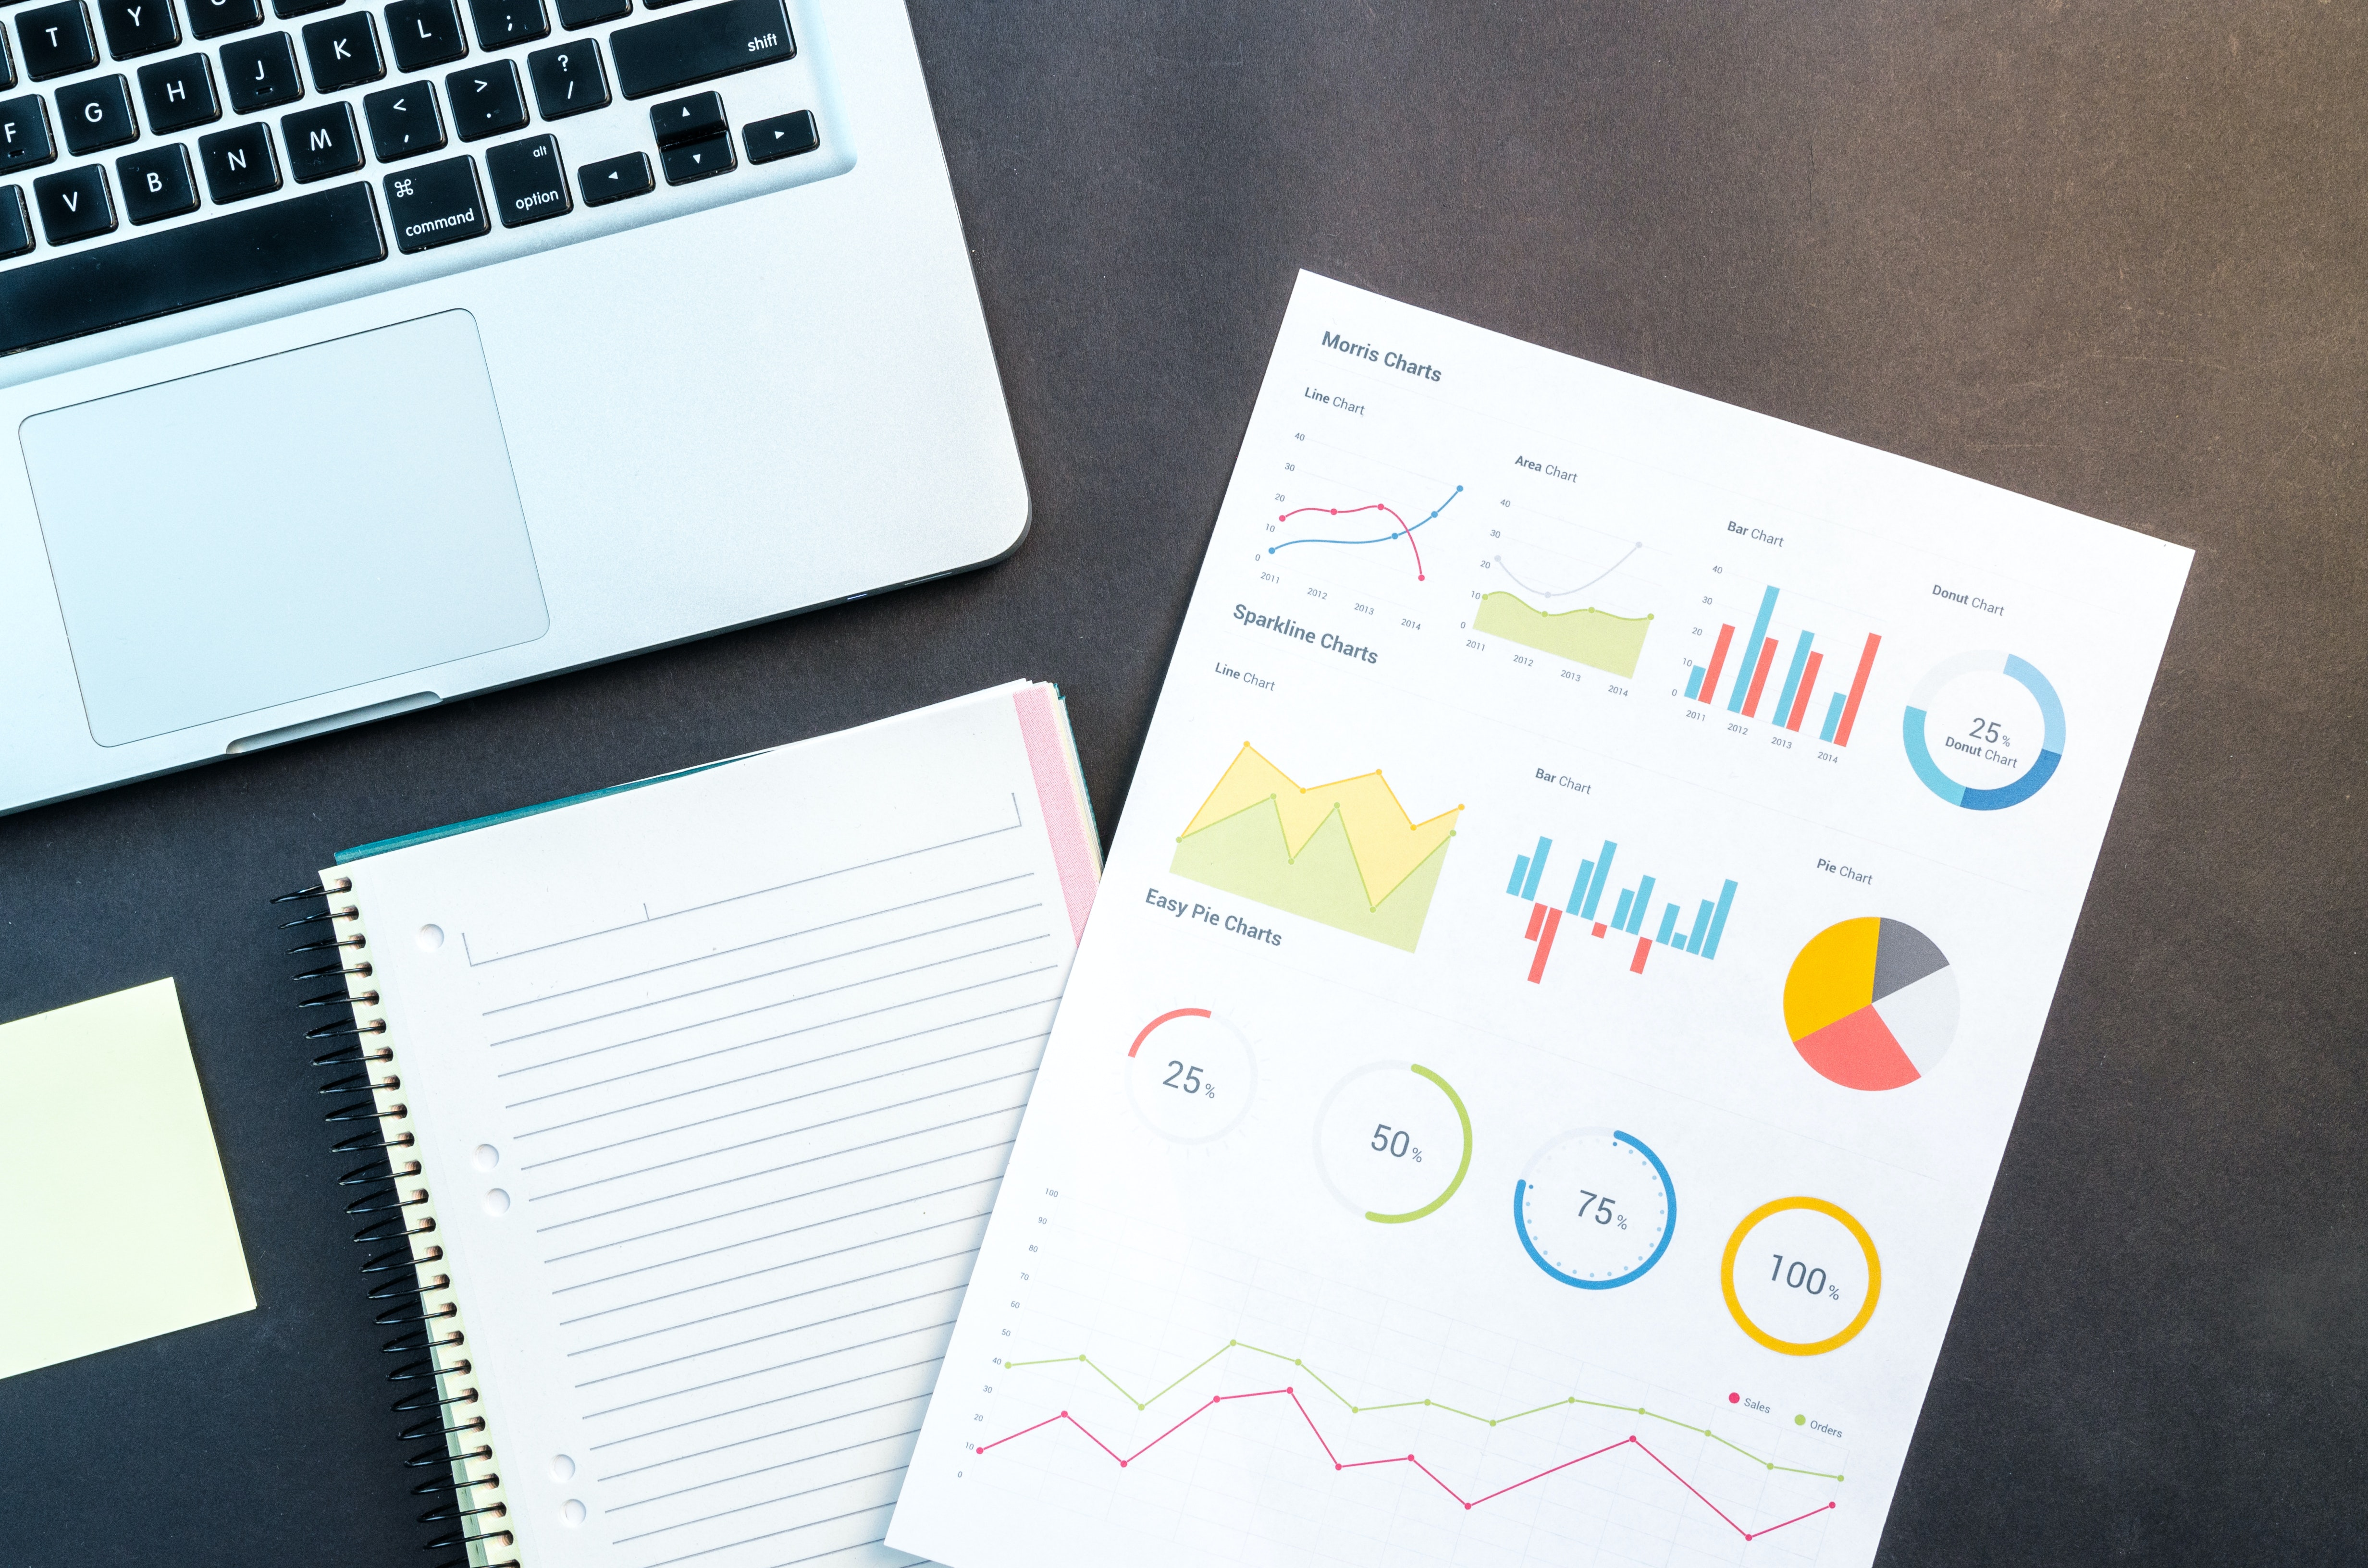 5 Sales KPIs You Should Already Be Tracking